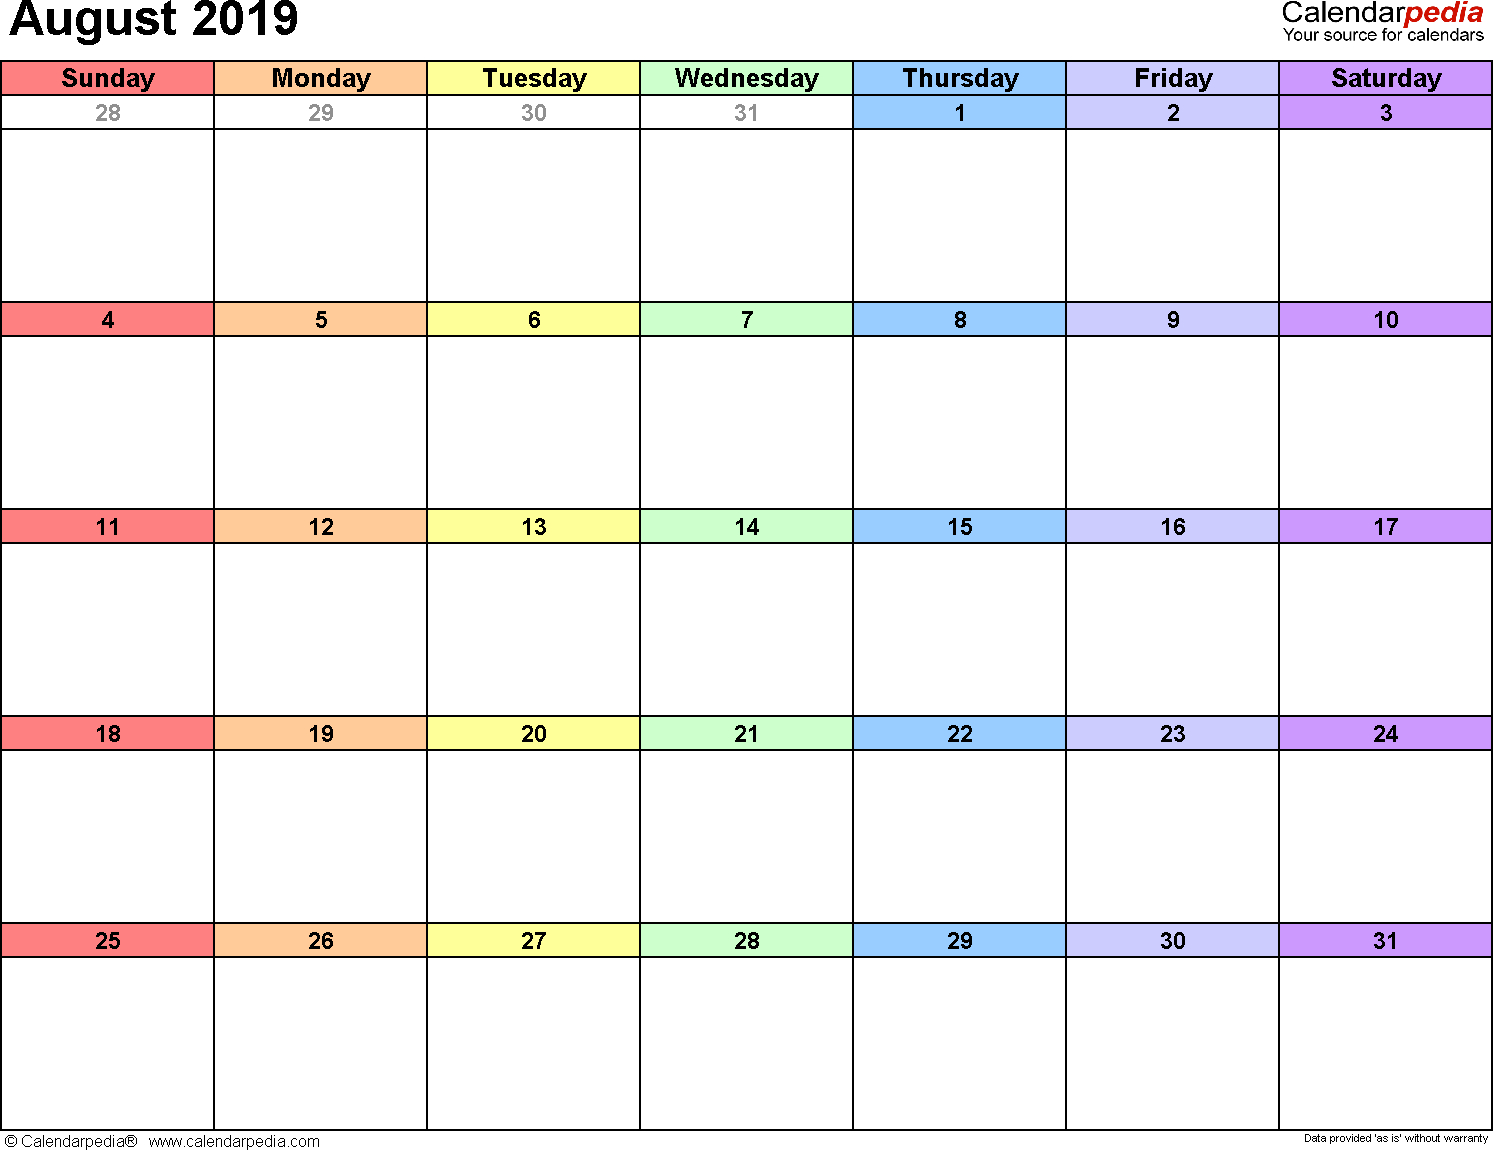 August 2019 Calendars For Word, Excel & Pdf within August Calendar Template With Notes